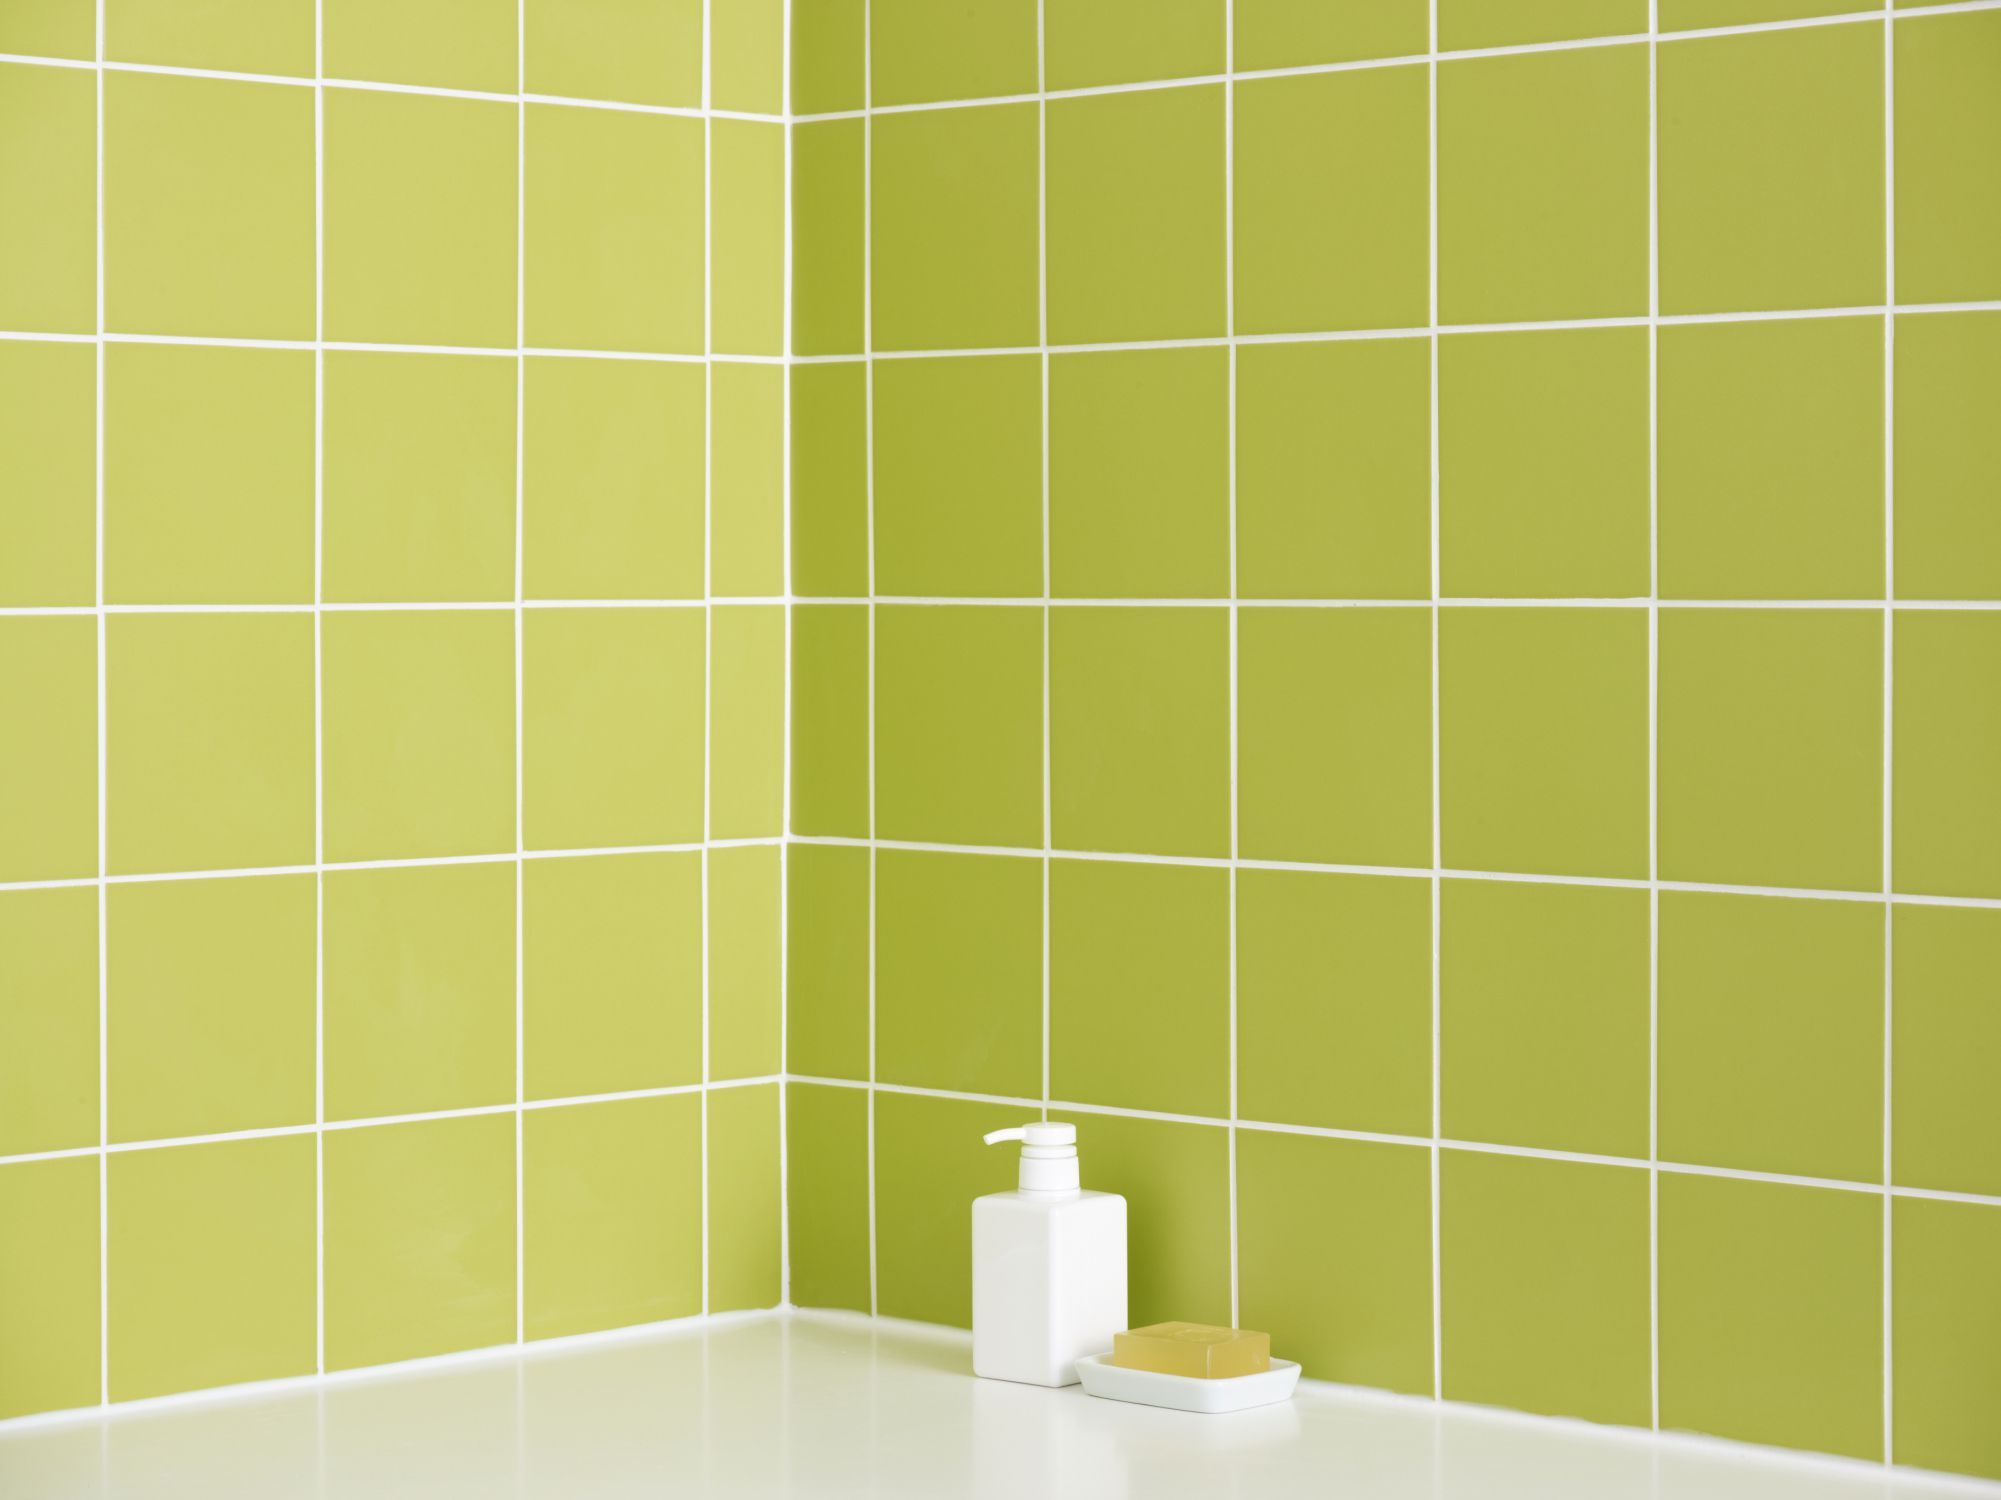 Bring green color to your bathroom with tiles dailygadgetfo Images